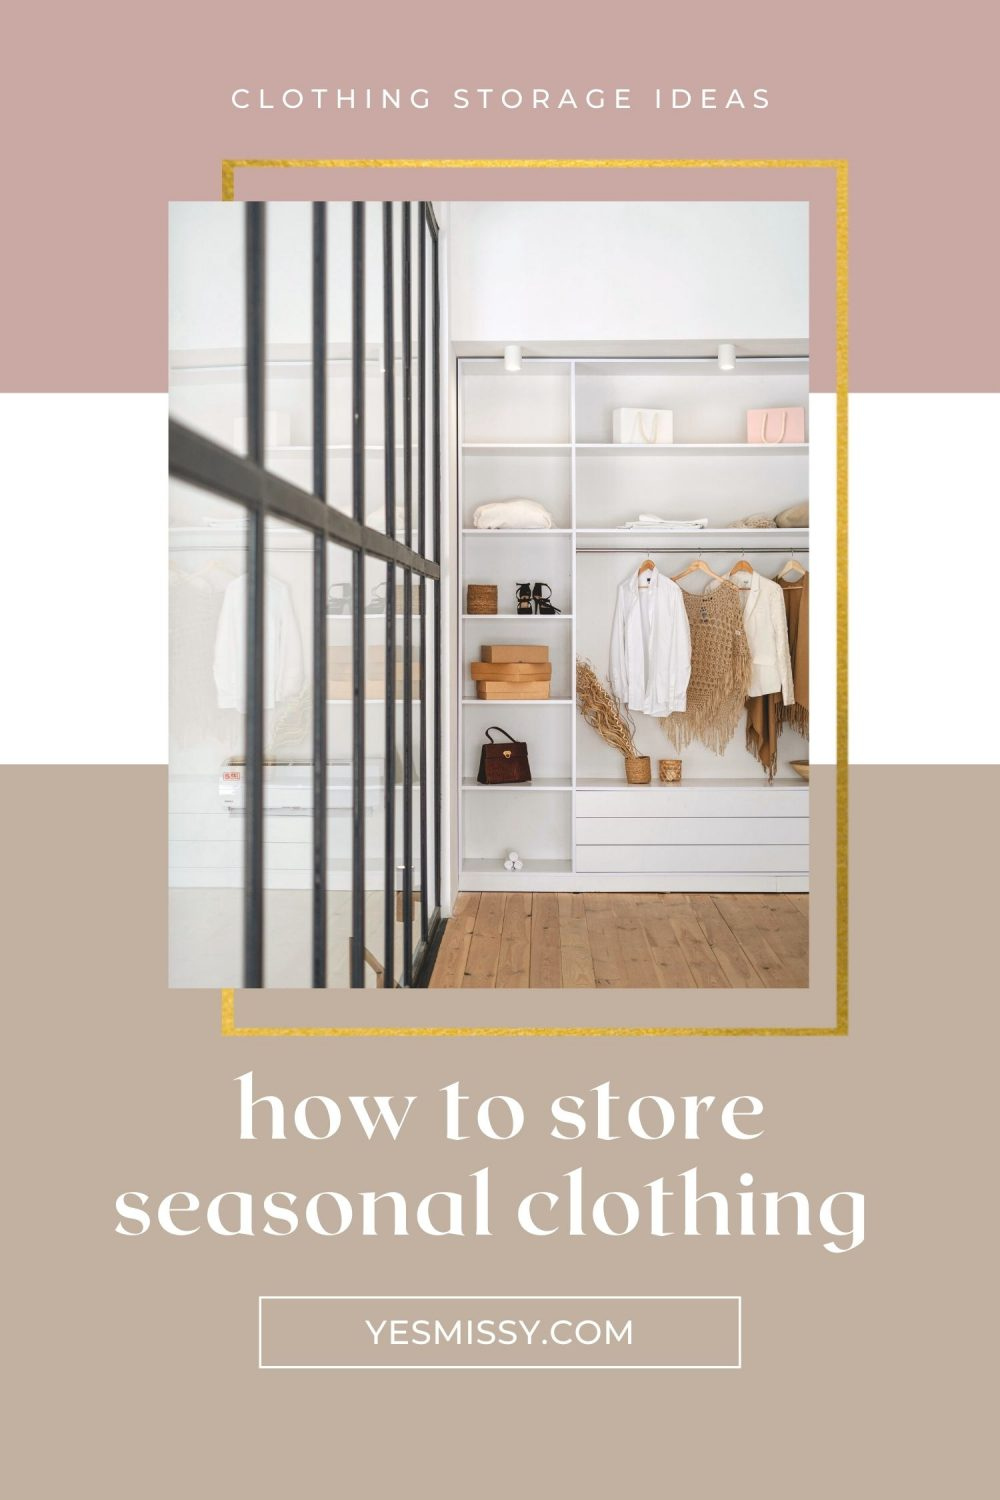 Tips for how to store clothing that's off season. Reduce clutter and better utilize your closet with these easy organization tips! Get them all on yesmissy.com